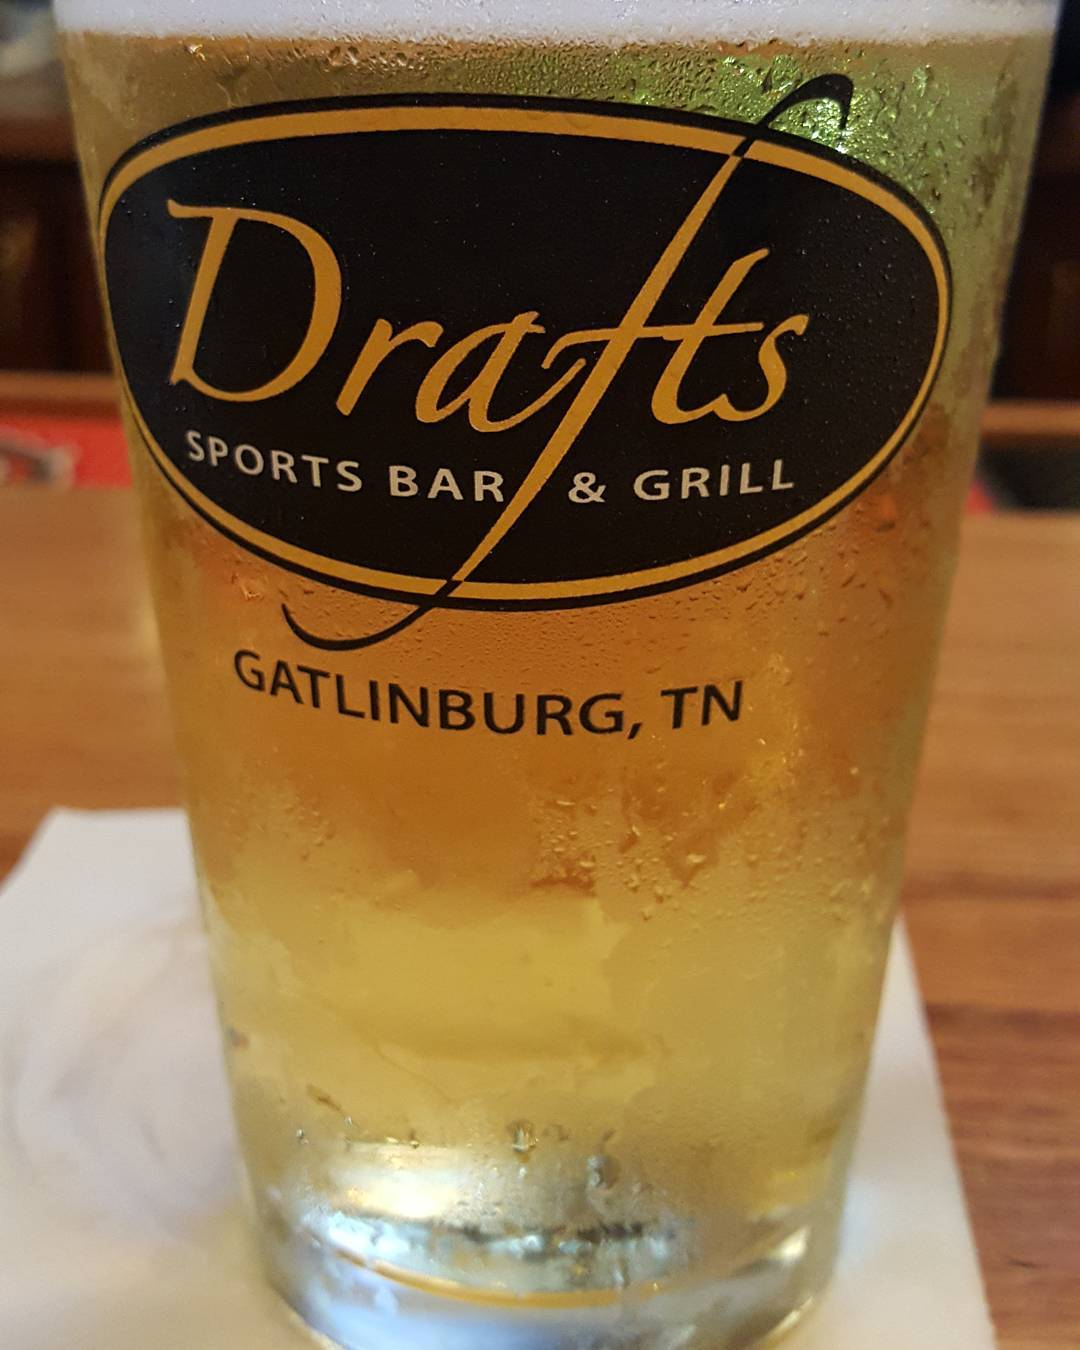 Gatlinburg Restaurants - Drafts Sports Bar & Grill - Original Photo